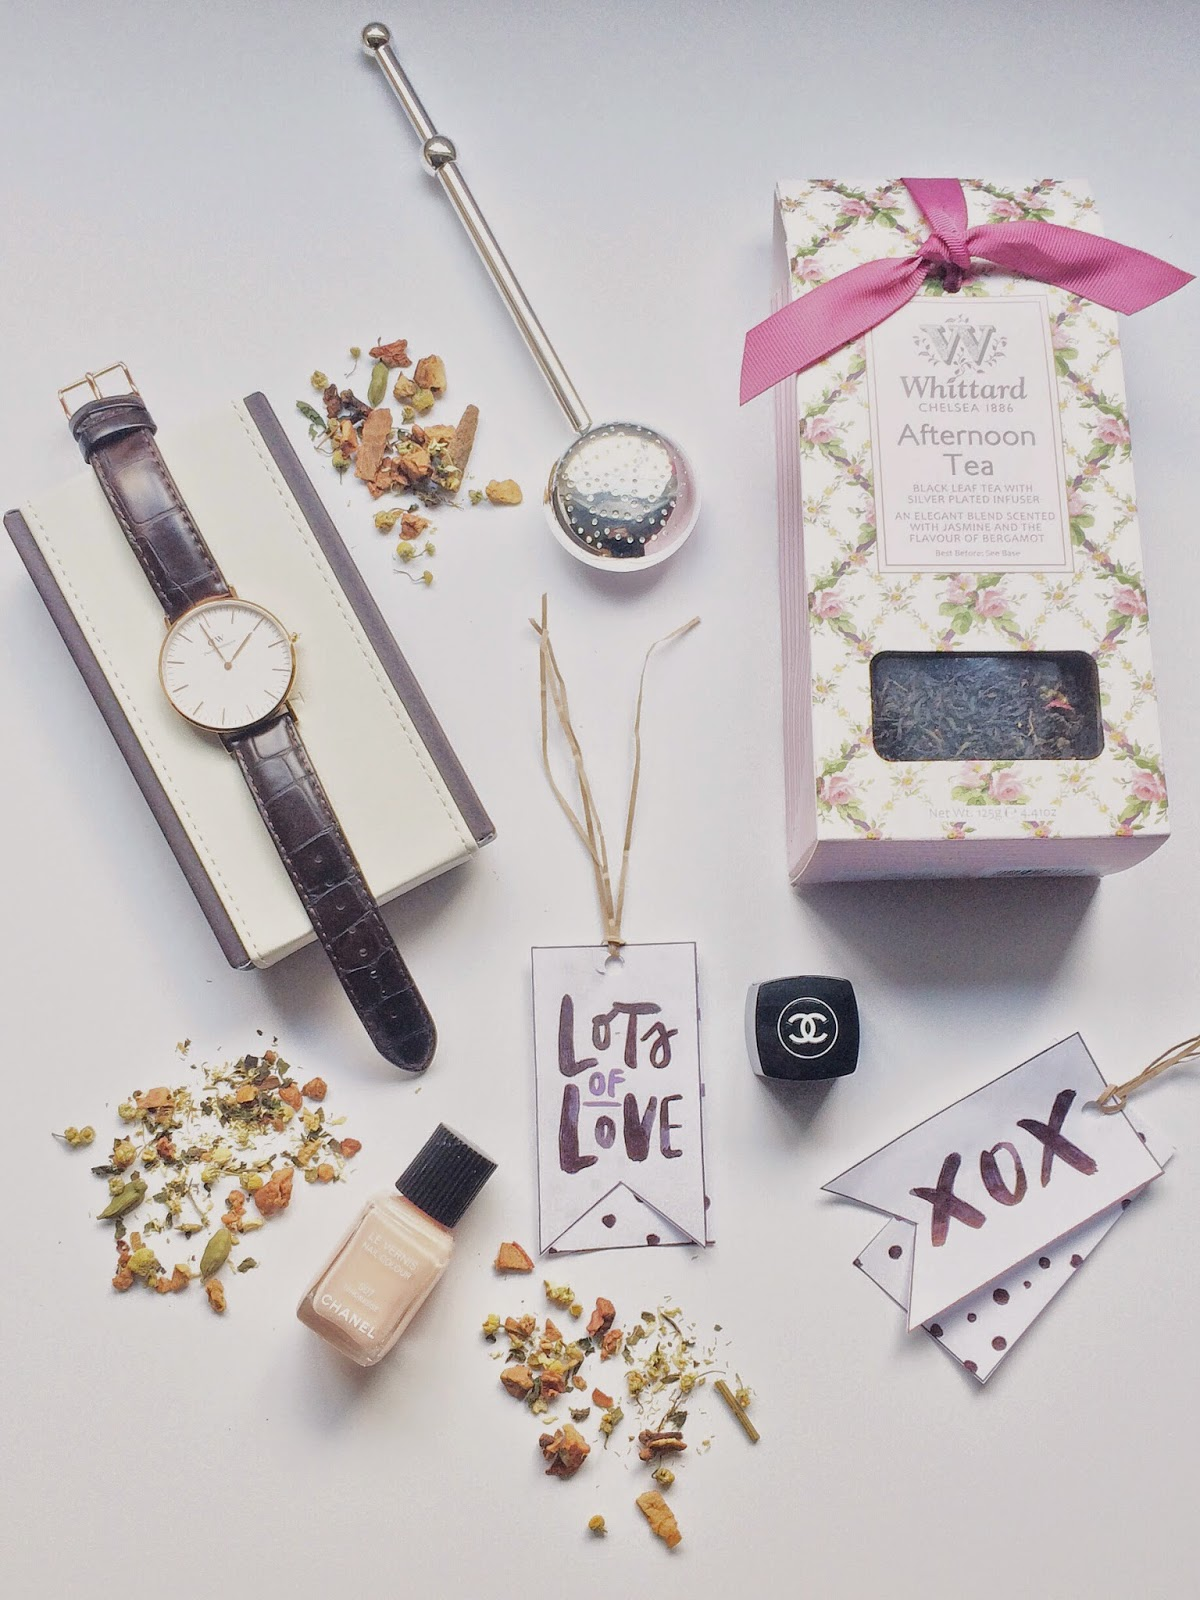 daniel wellington watch, daniel wellington watch discount code, stocking filler ideas, whitteard tea